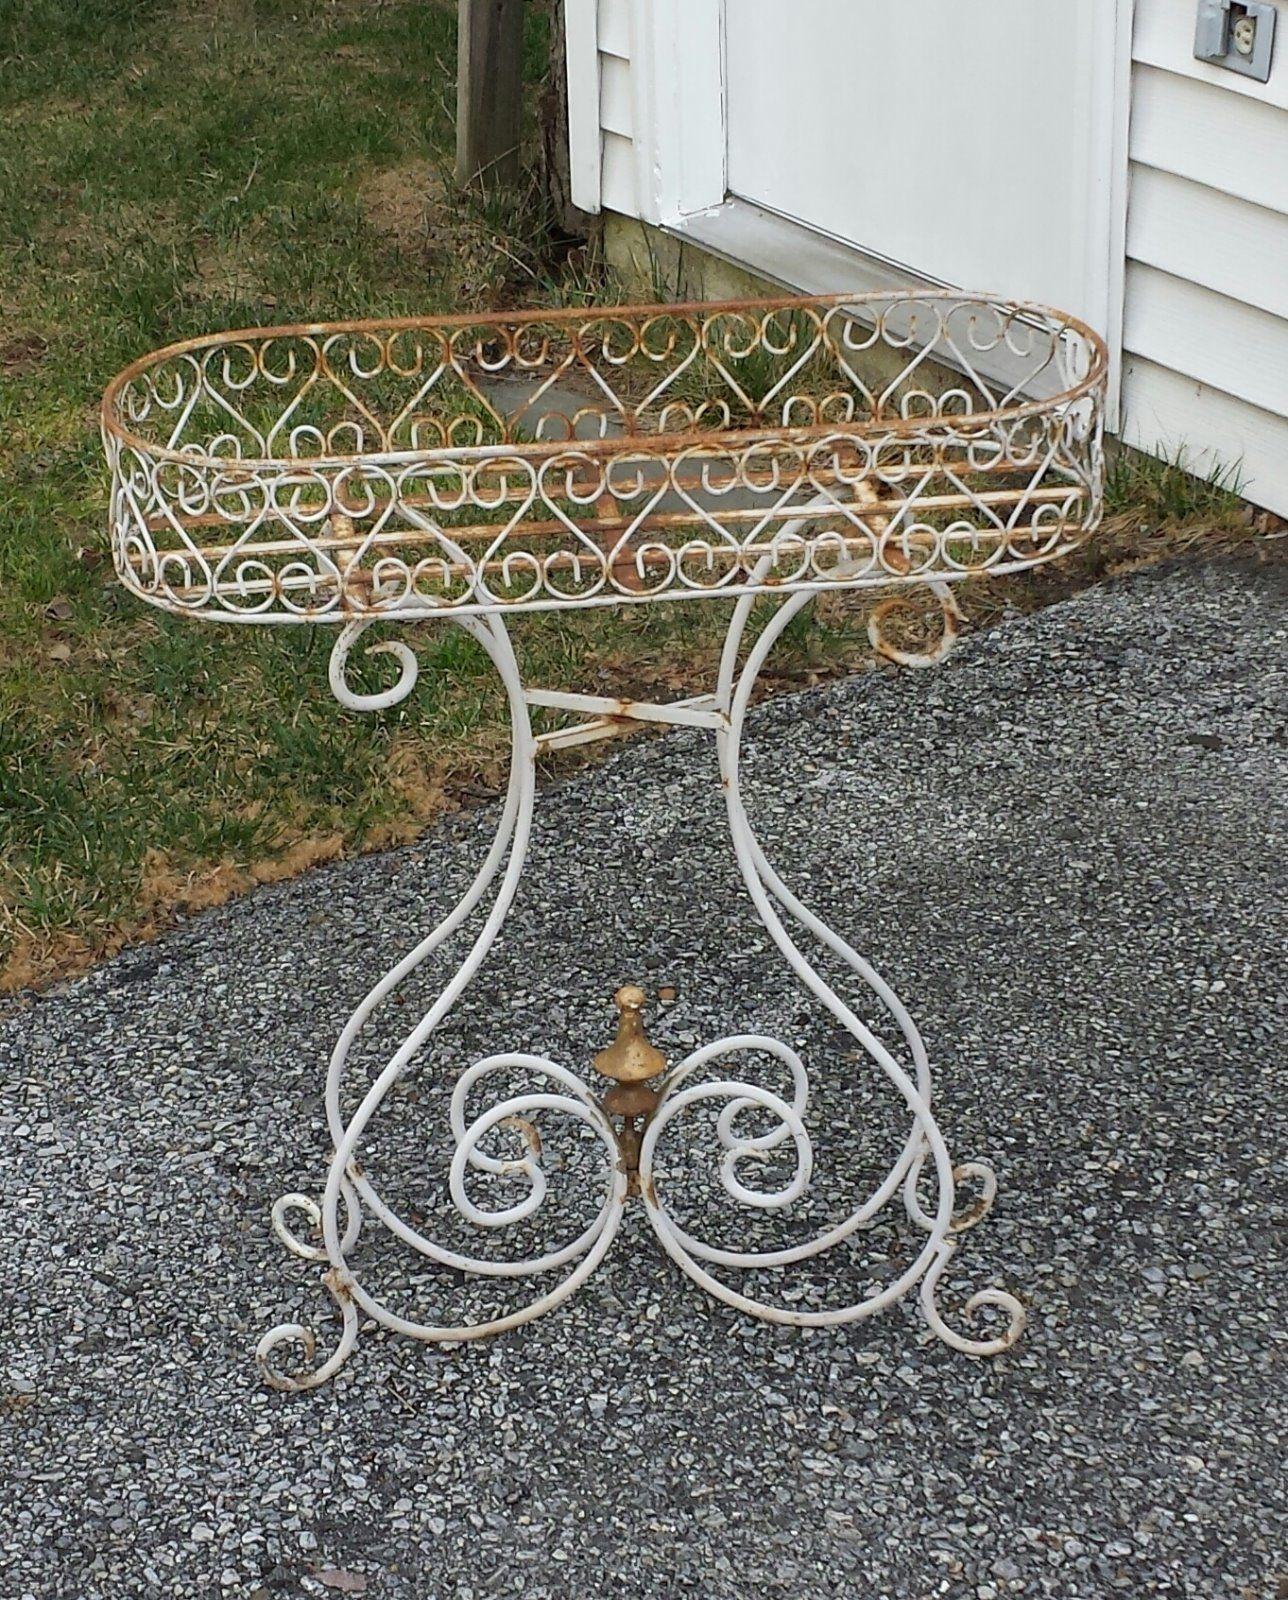 Romantic Vintage White Wrought Iron Scrolled Plant Stand ... on Iron Stand Ideas  id=98816